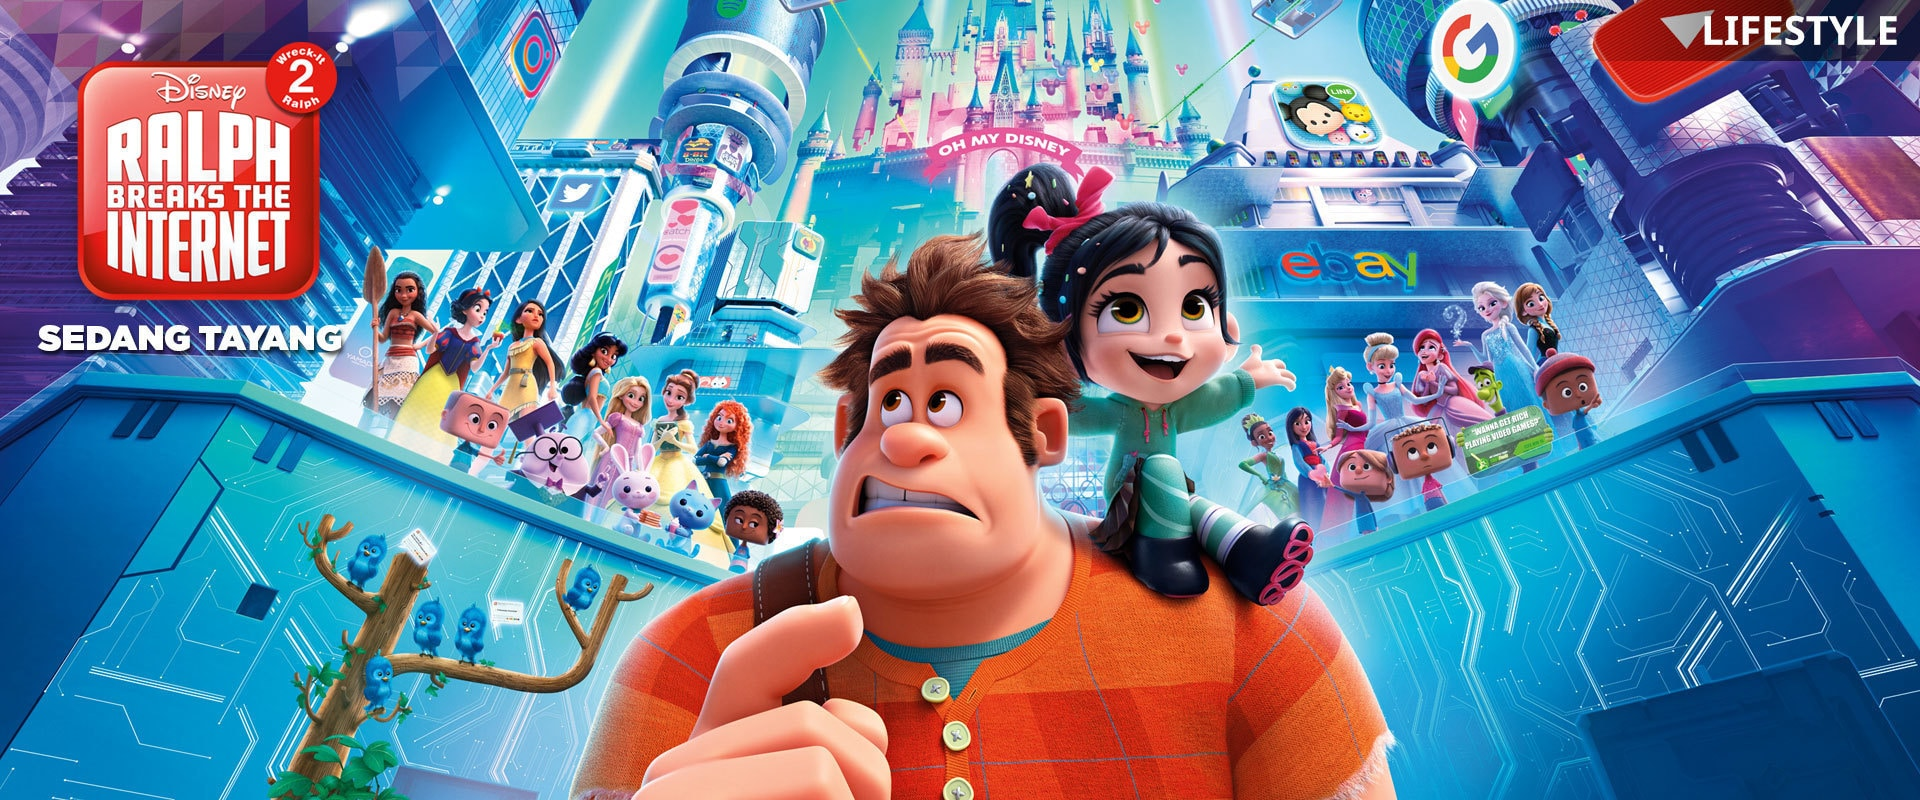 Ralph Breaks the Internet | Disney | Lifestyle | Movies